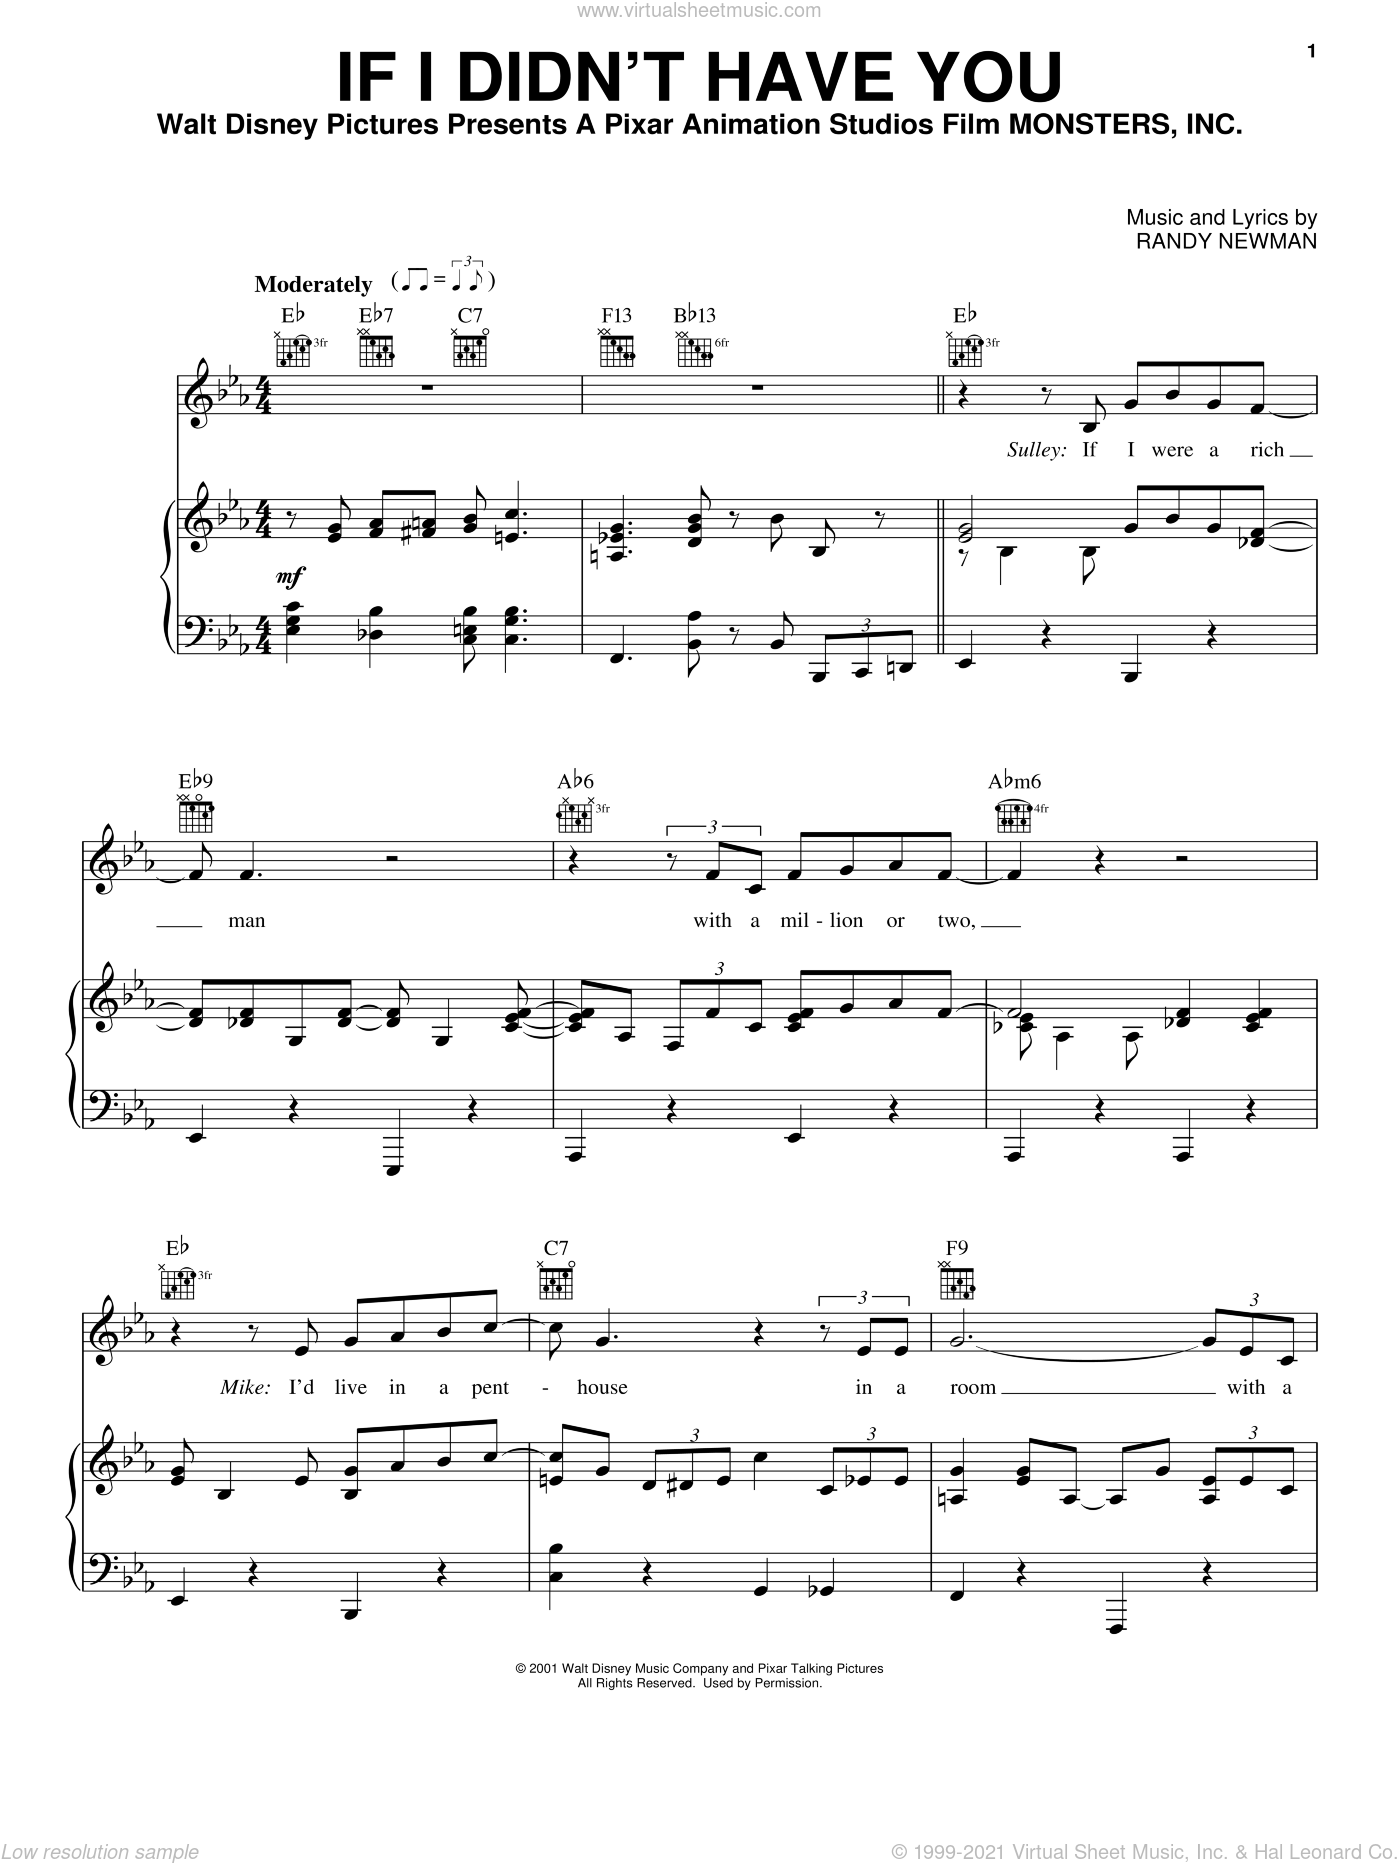 If I Didn't Have You sheet music for voice, piano or guitar by Billy Crystal and John Goodman, Billy Crystal, John Goodman, Monsters, Inc. (Movie) and Randy Newman, intermediate skill level